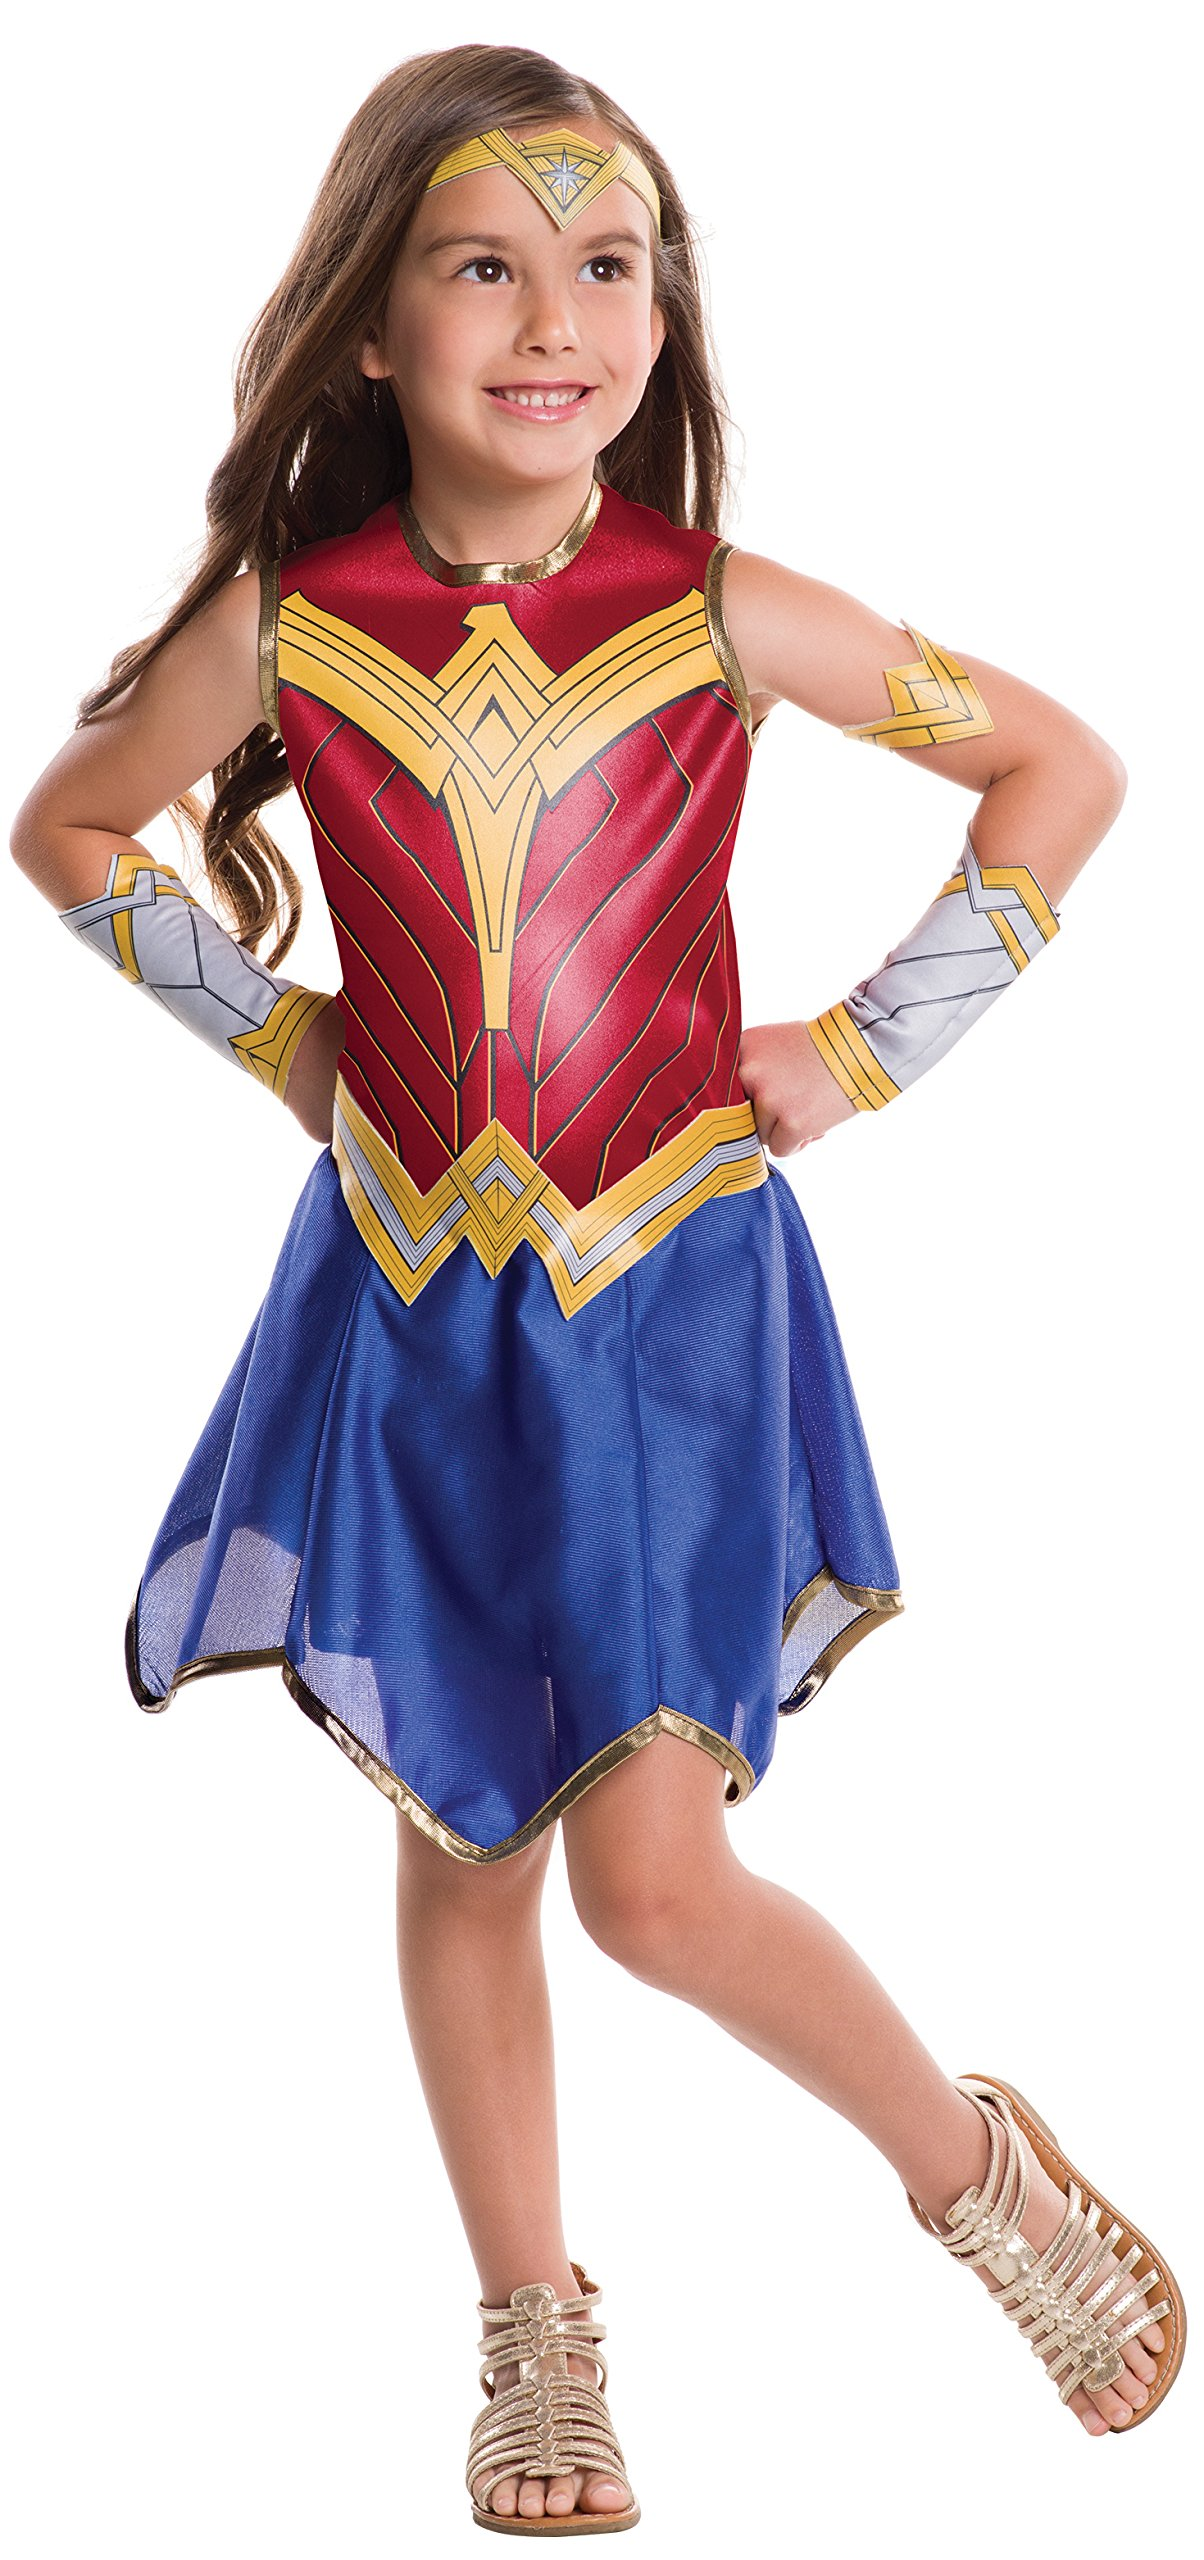 - 81kTI74FXQL - Rubie's Costume Wonder Woman Movie Value Costume, S